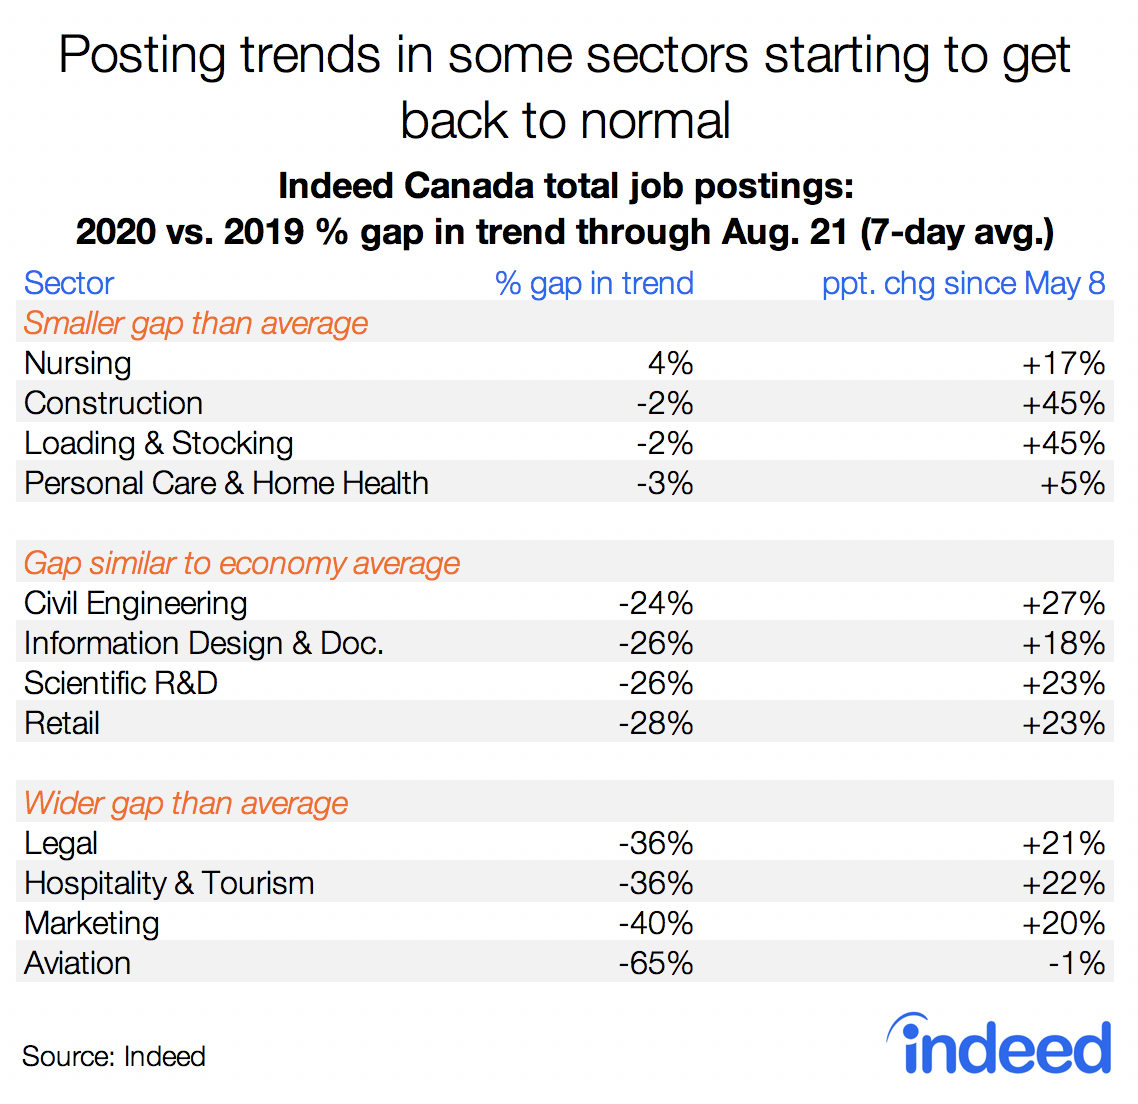 Posting trends in some sectors starting to get back to normal